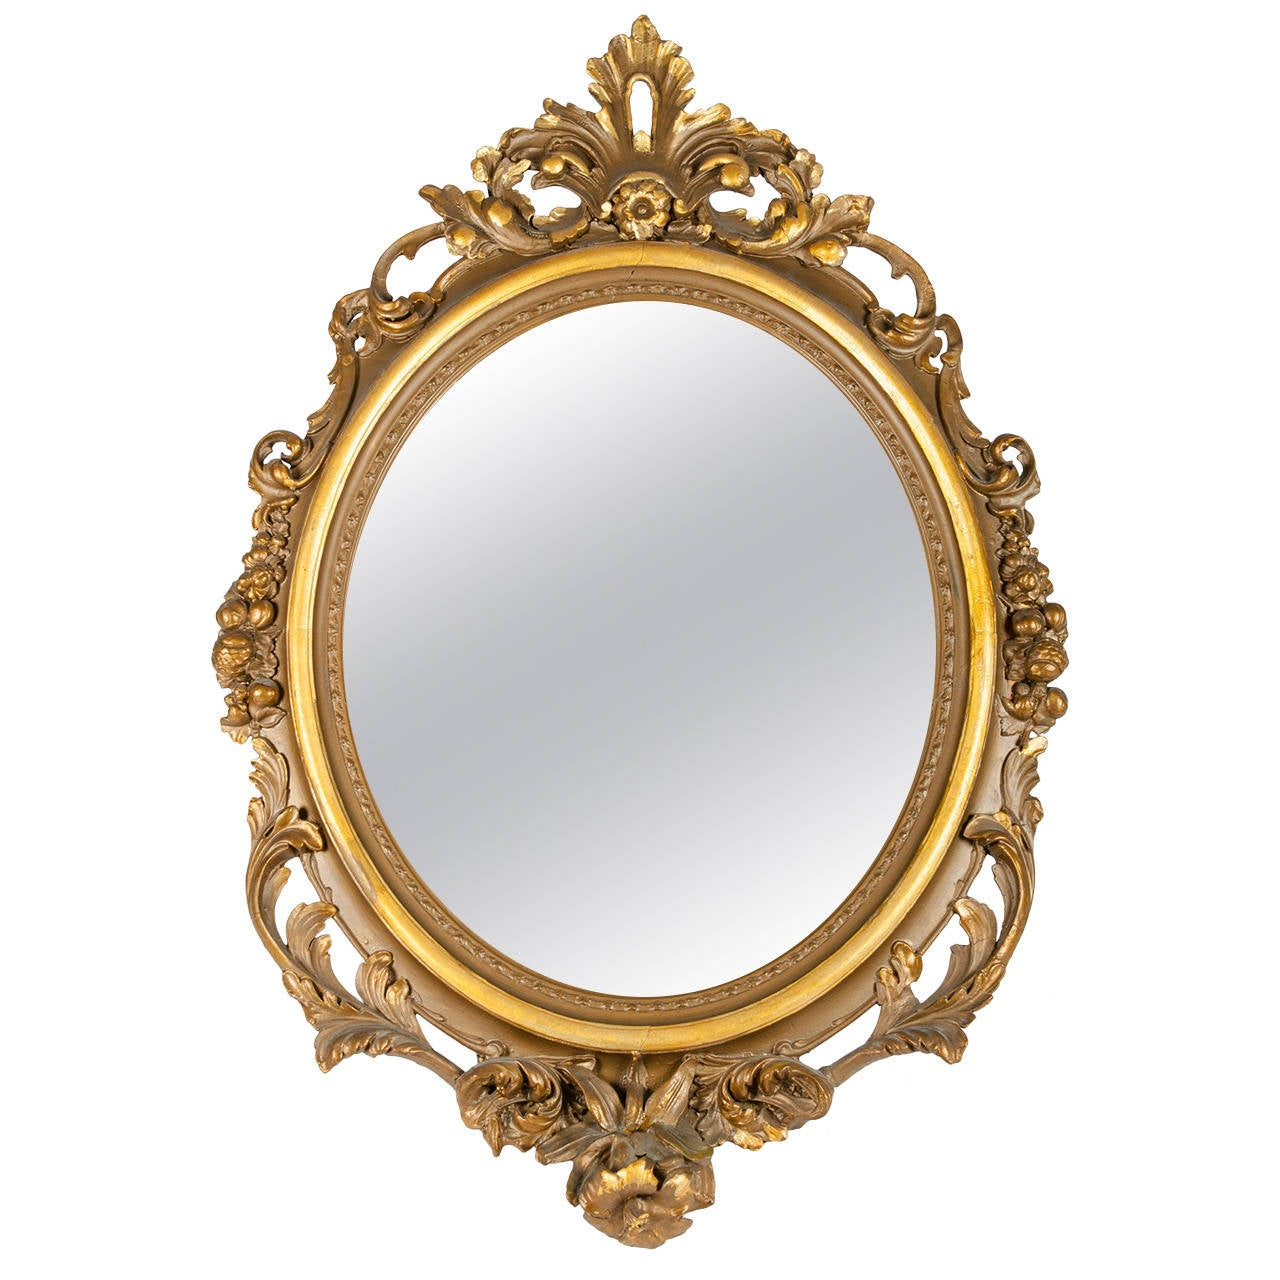 Large gold gilt gesso mirror for sale at 1stdibs for Big mirrors for sale